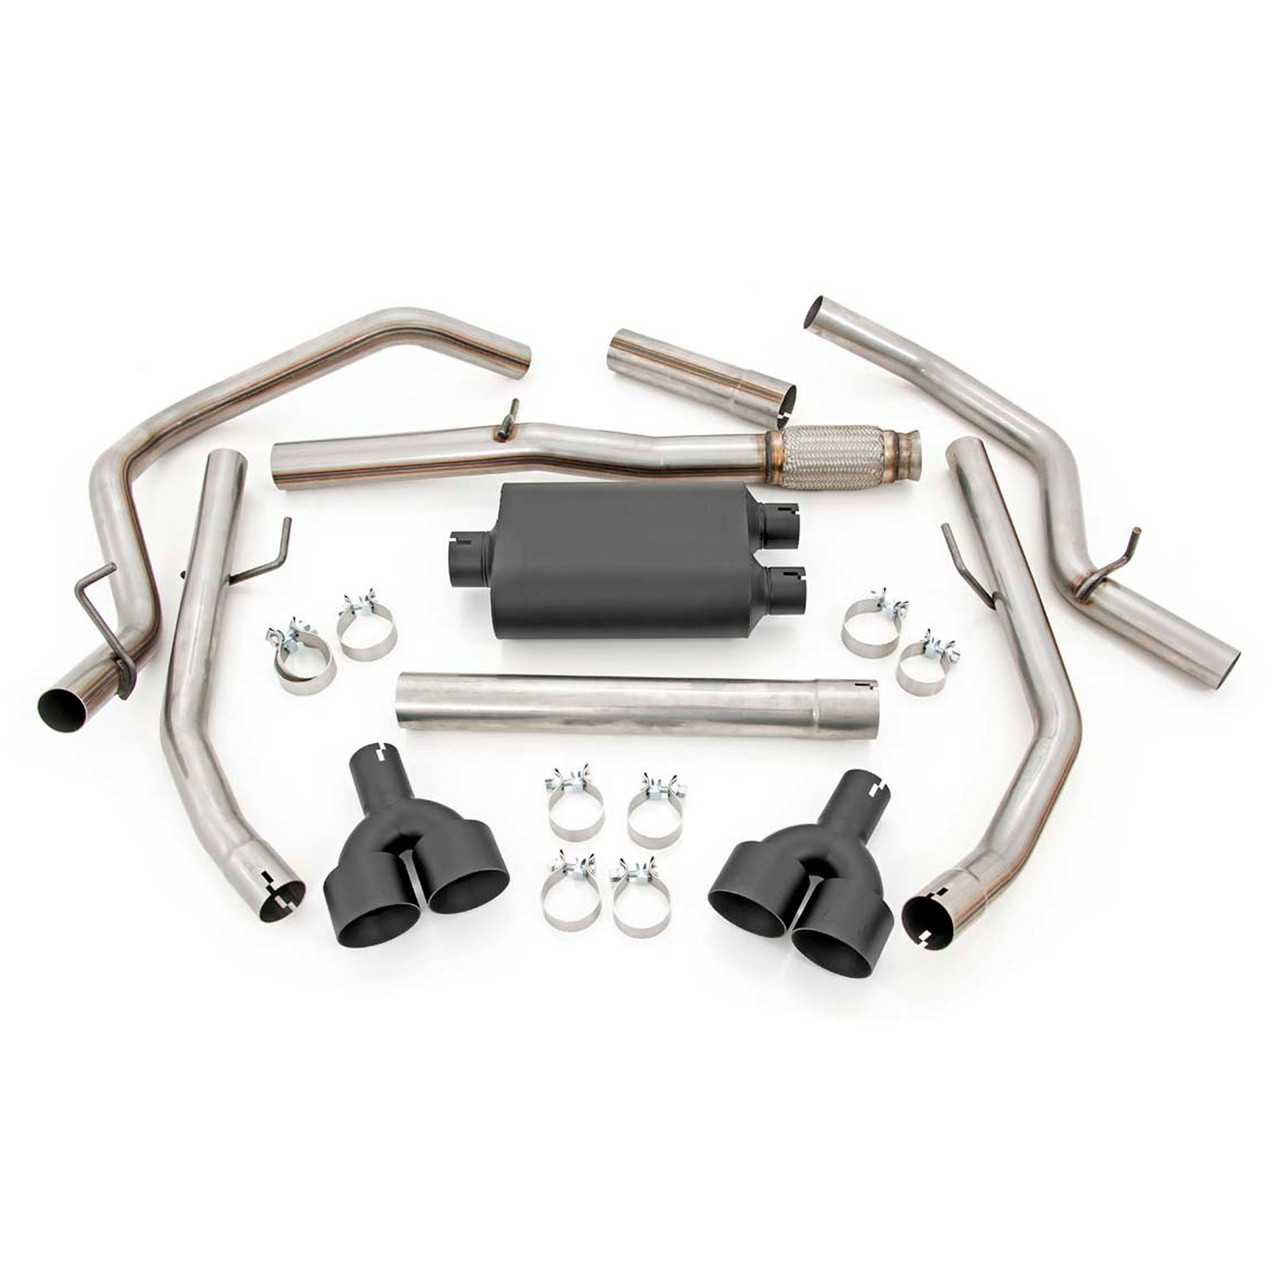 2019-2020 Chevy Silverado 1500 5.3L Dual Cat Back Exhaust System with Black Tips